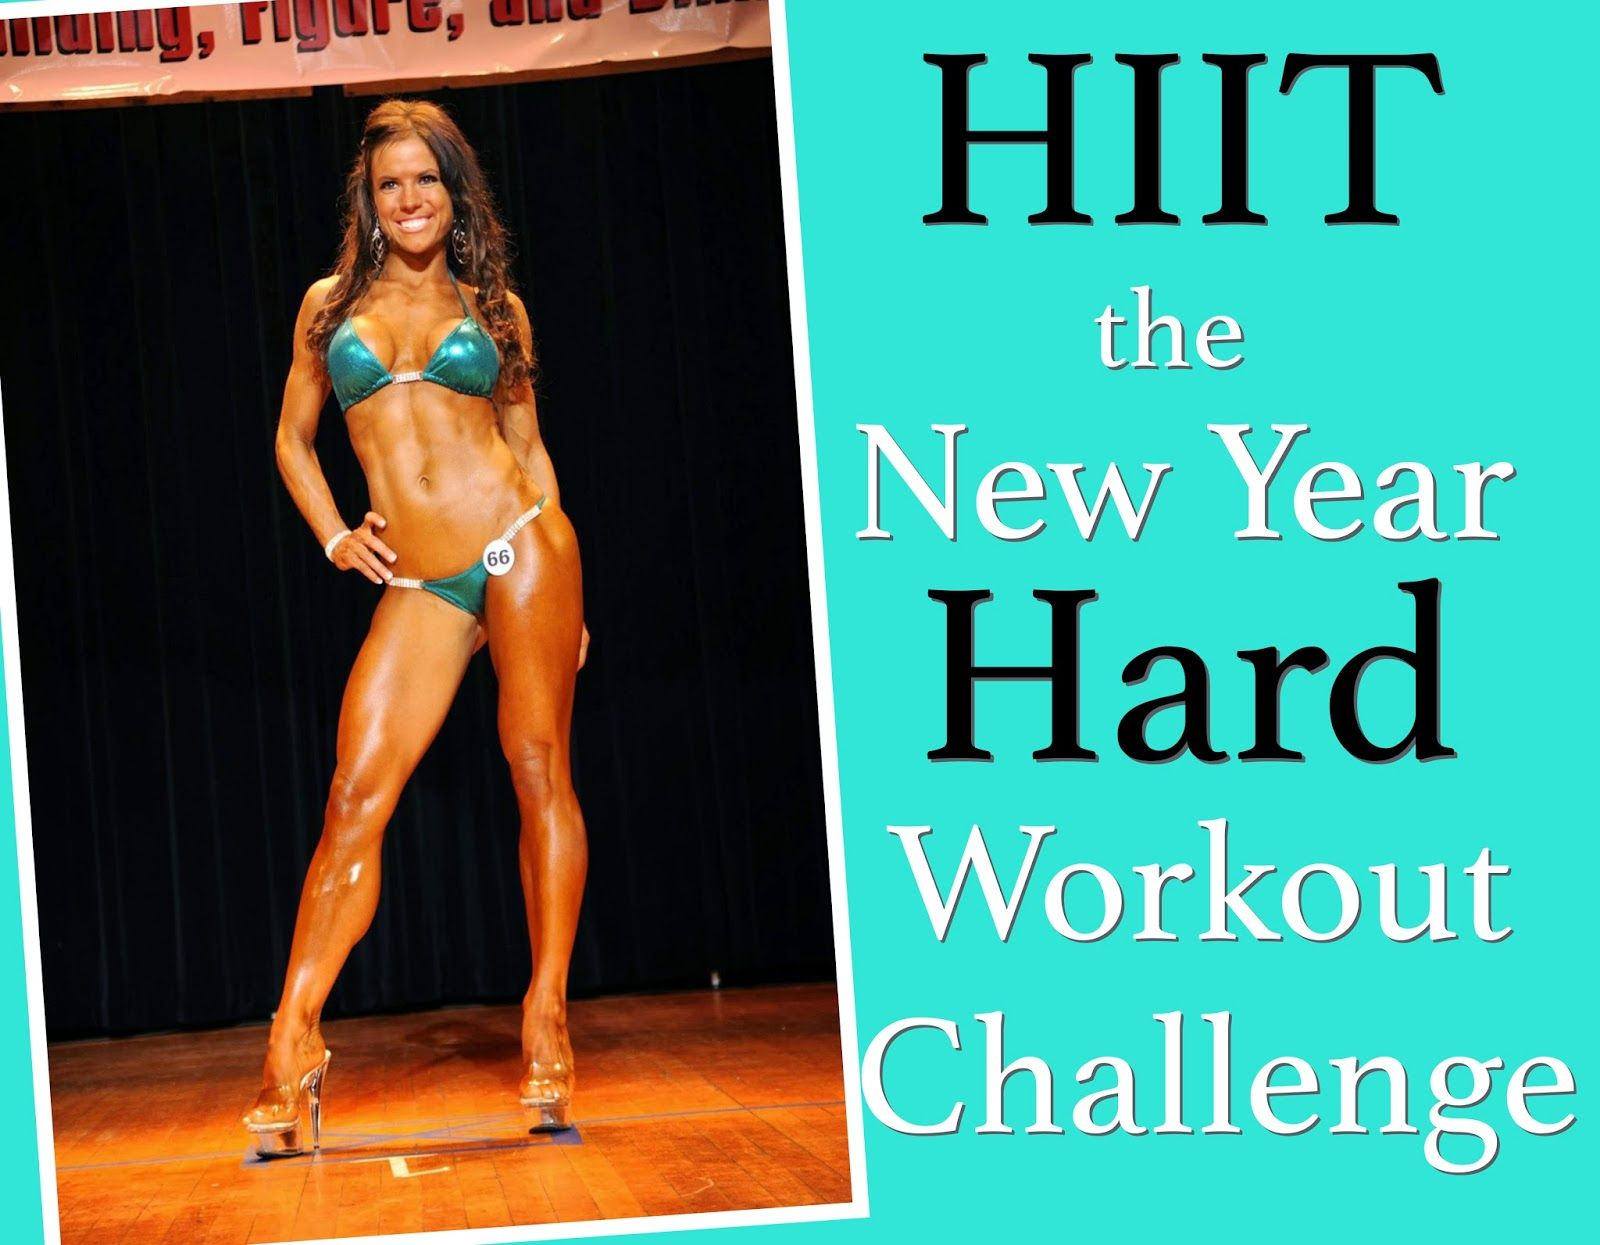 melissa bender fitness hiit the new year hard workouts 30 day workout challenge fitness. Black Bedroom Furniture Sets. Home Design Ideas